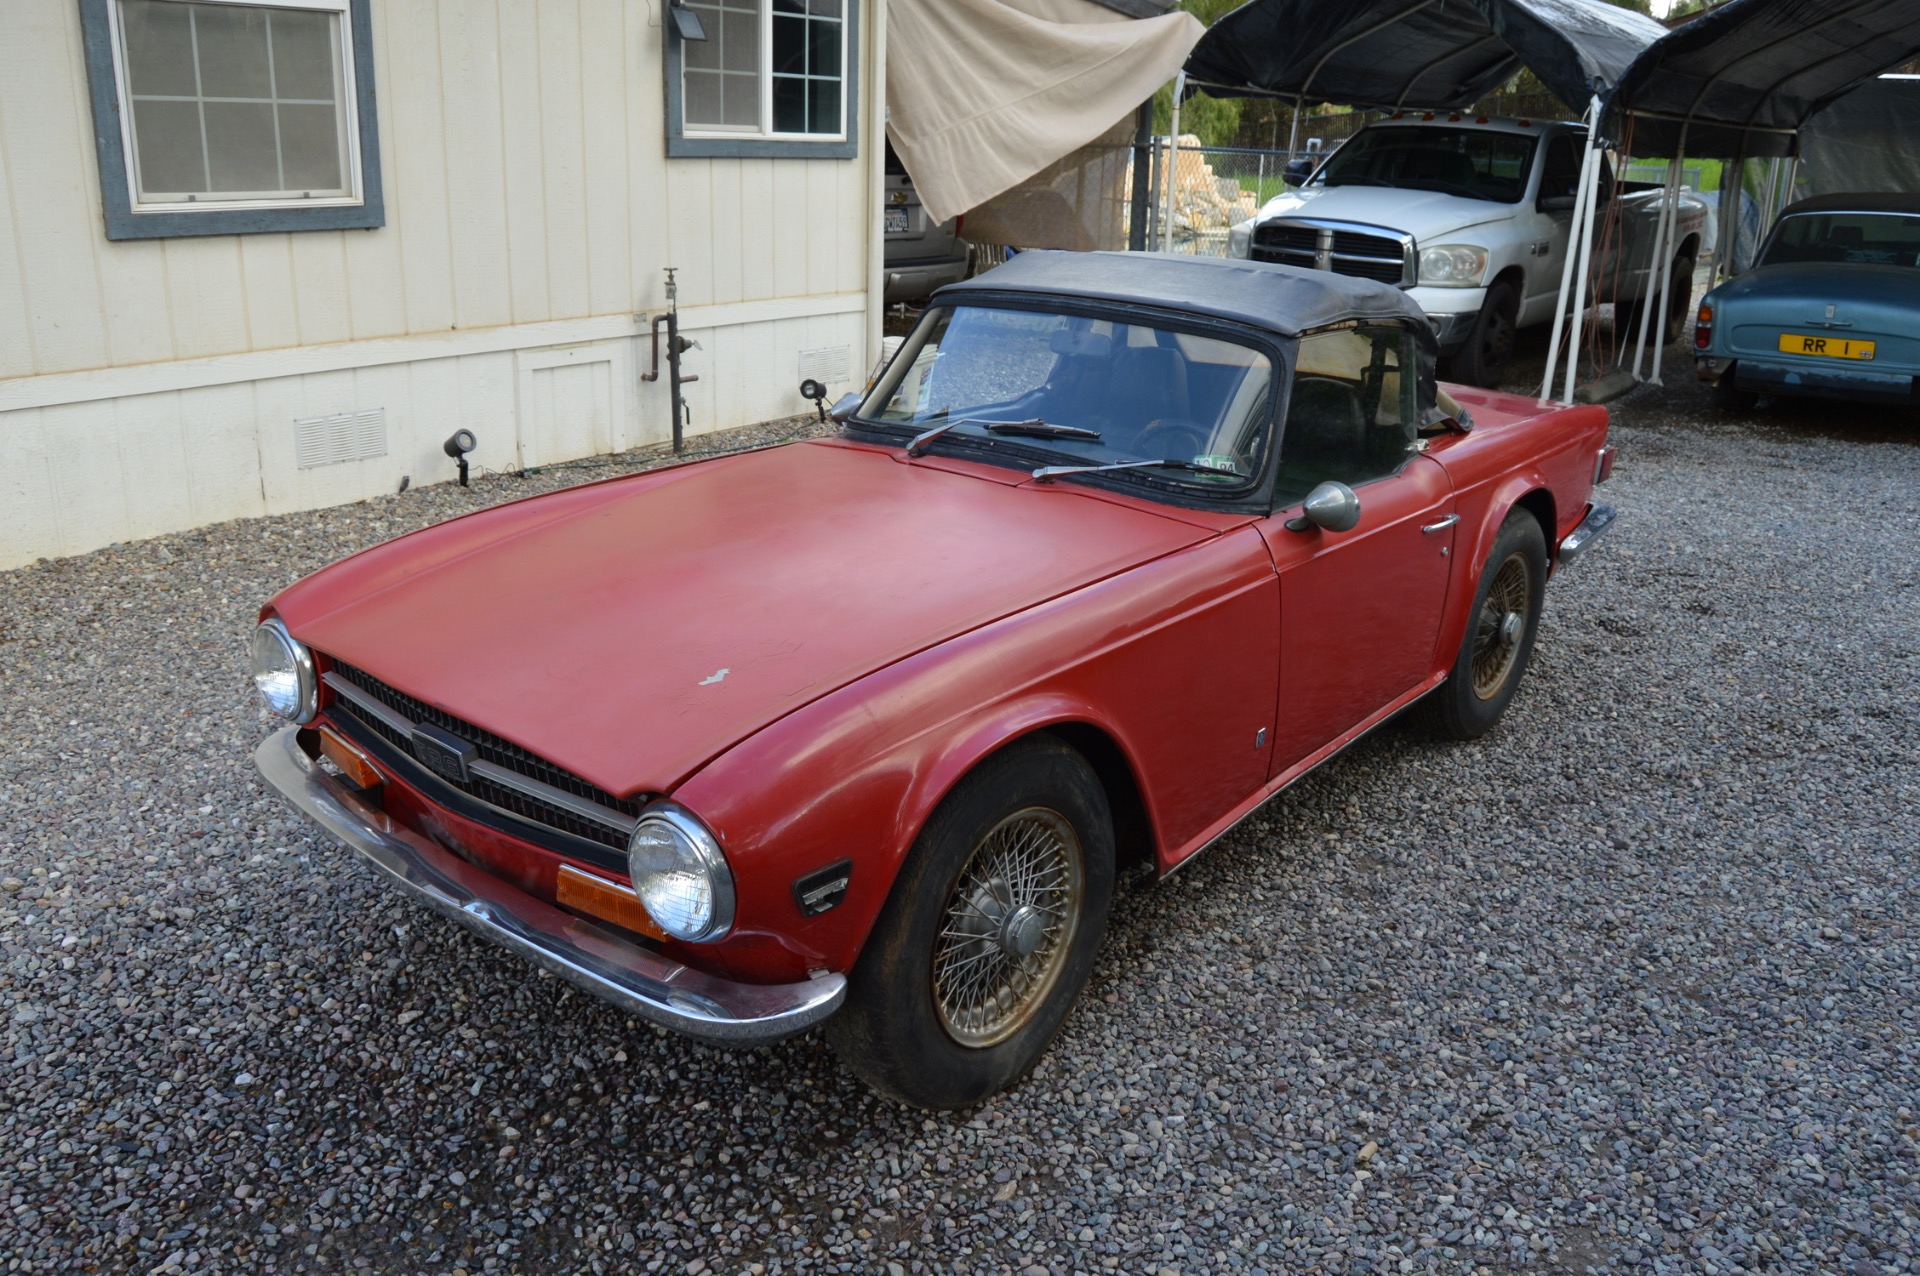 Used 1971 Triumph TR6 For Sale (Special Pricing) | Affordable